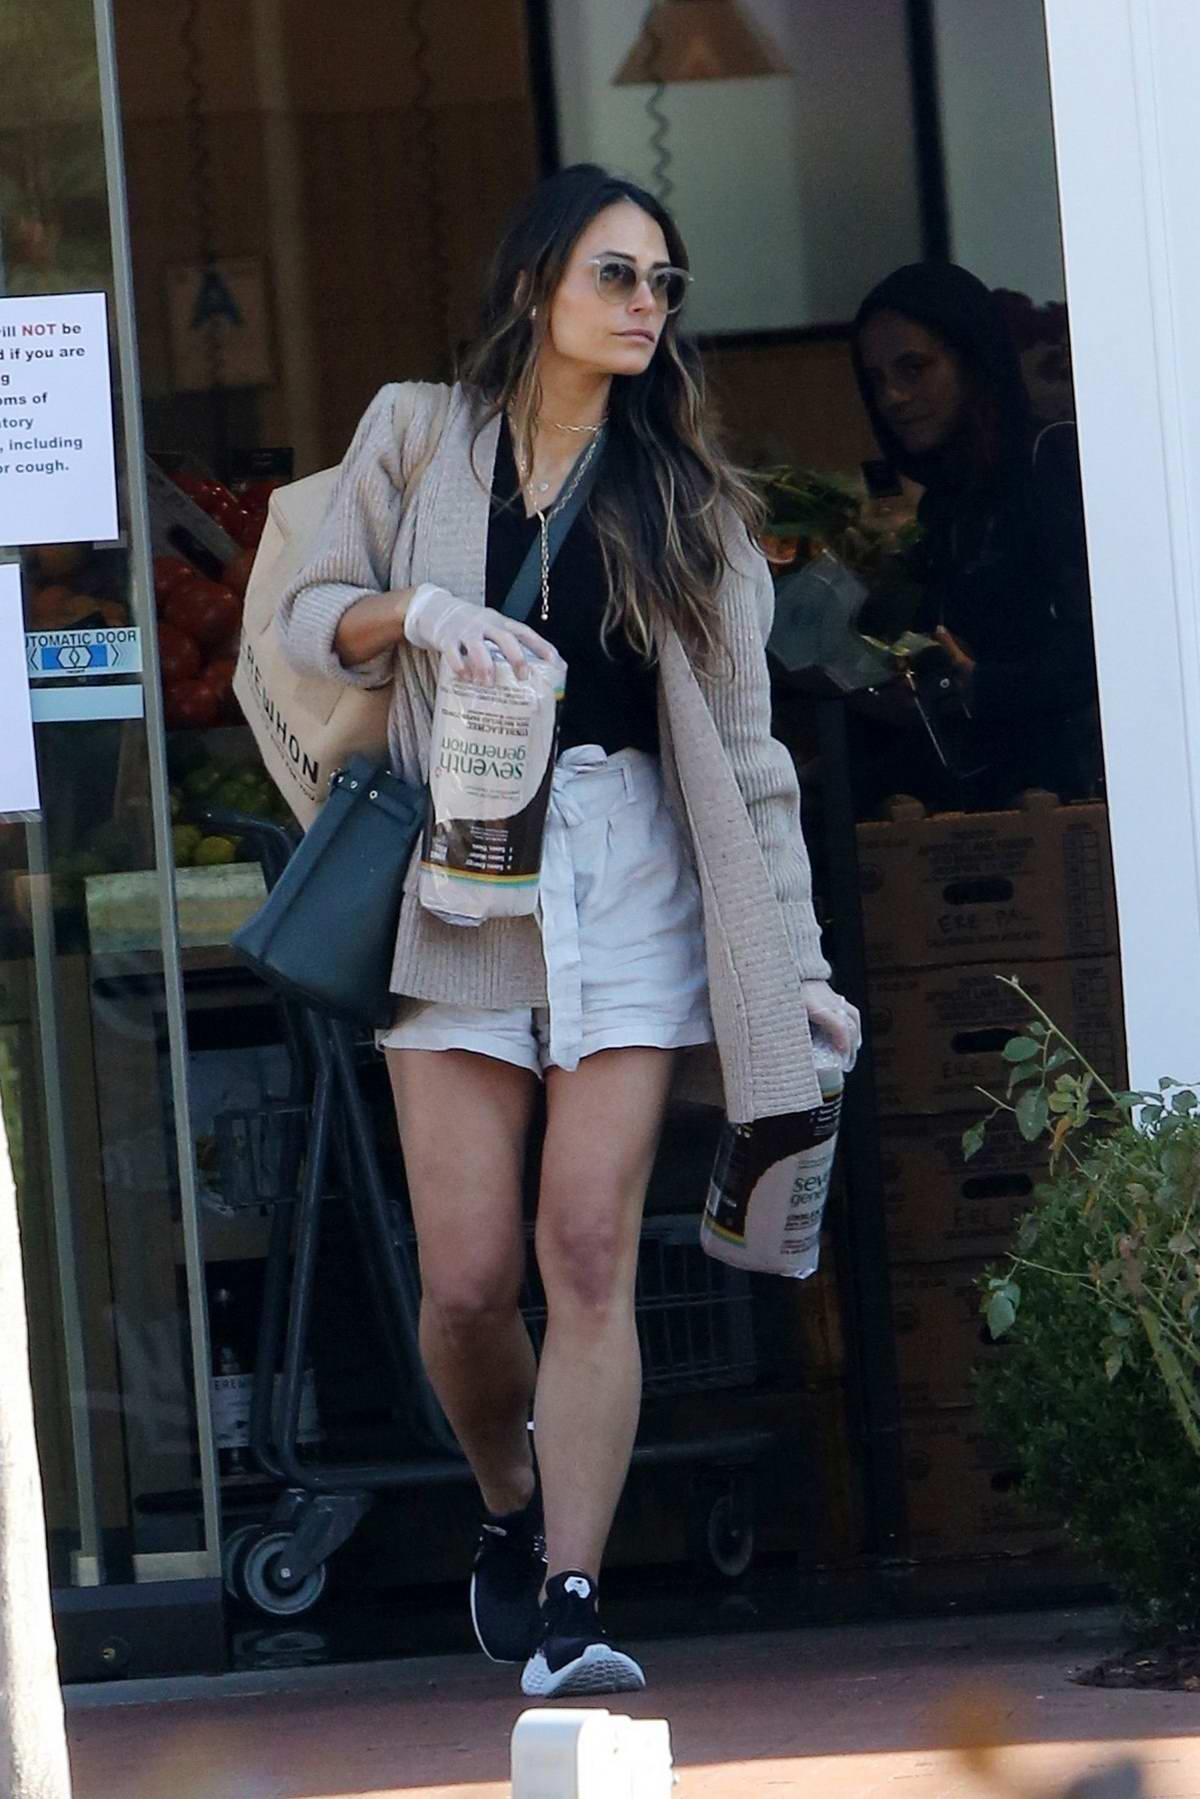 Jordana Brewster spotted while shopping some supplies at Erewhon Market in Pacific Palisades, California